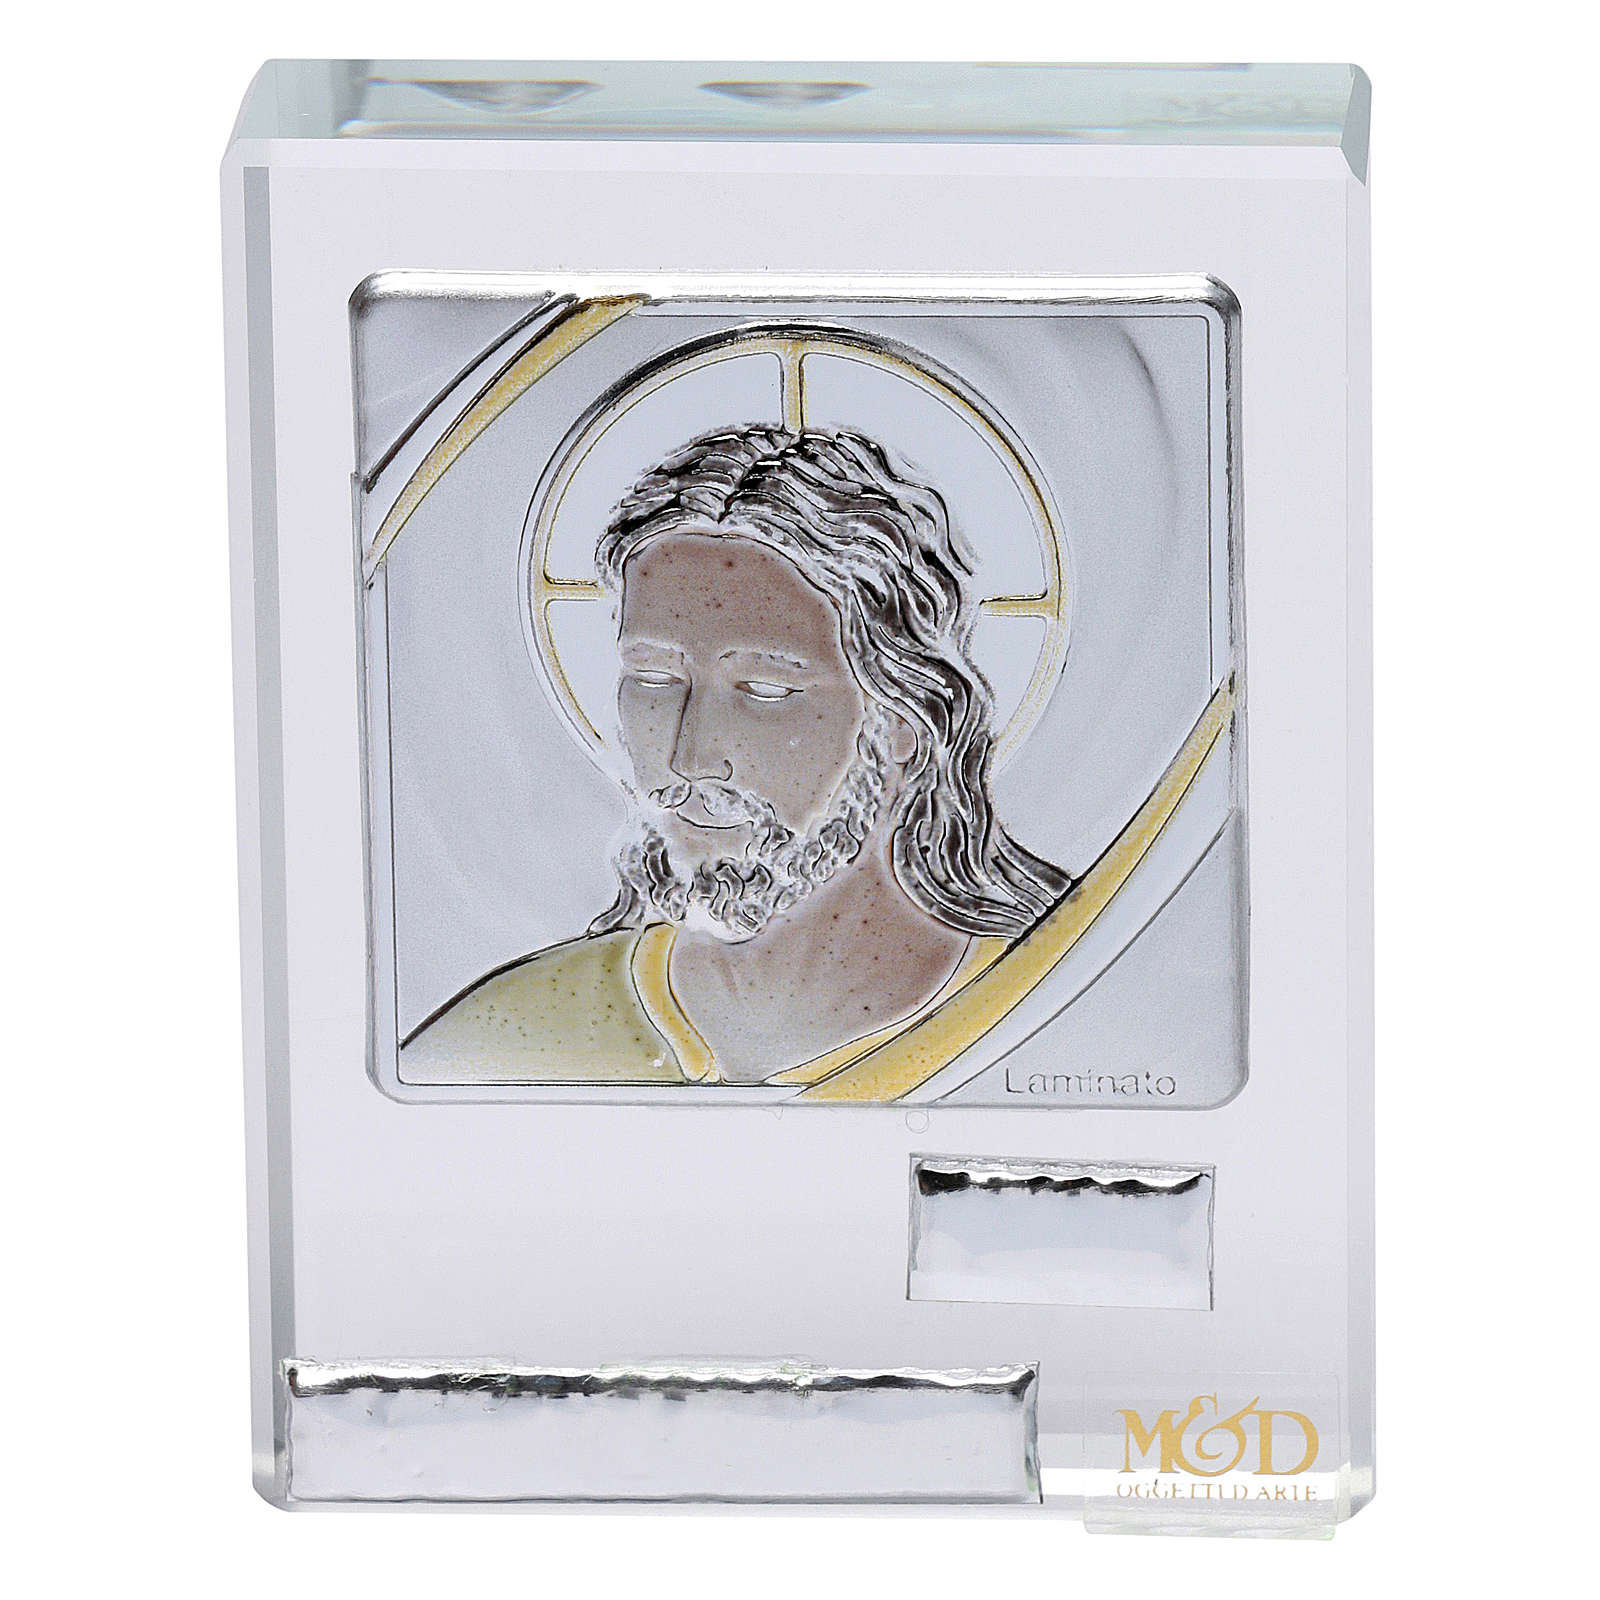 Party favour with face of Jesus 5x5 cm 3